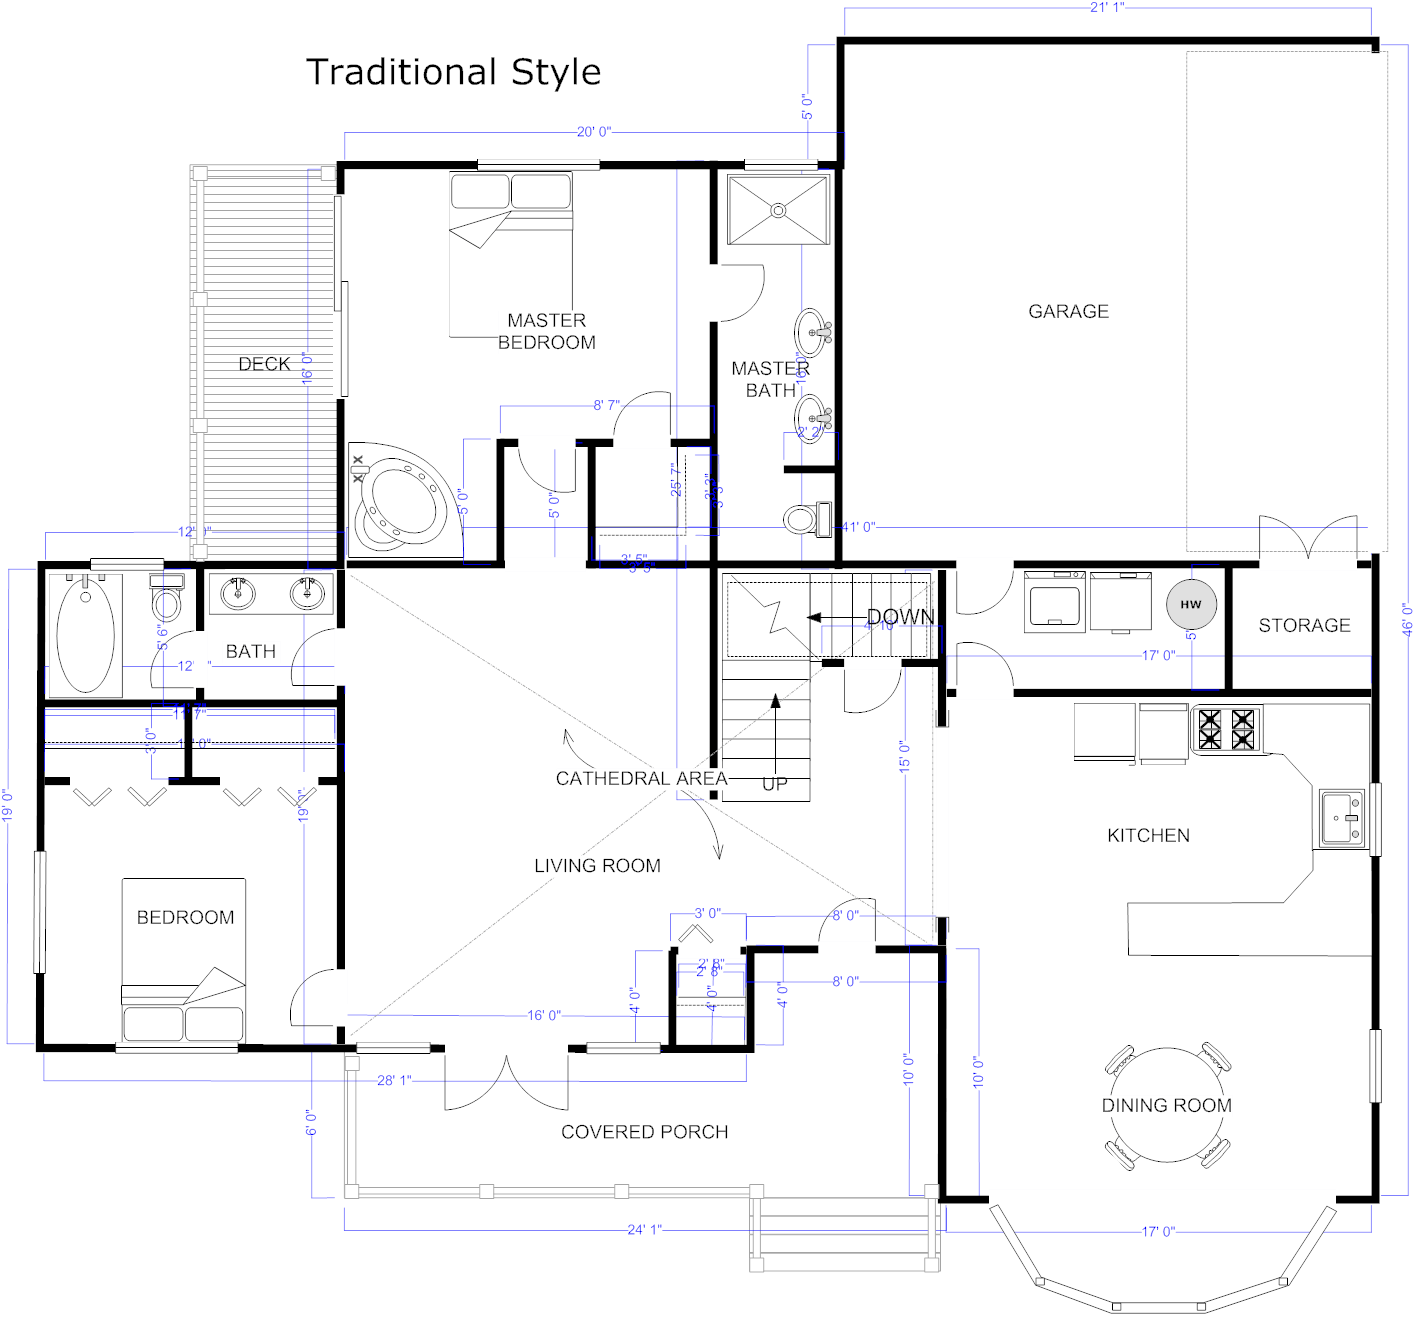 3 Bedroom Home Blueprints Electrical,Home.Home Plans Ideas Picture